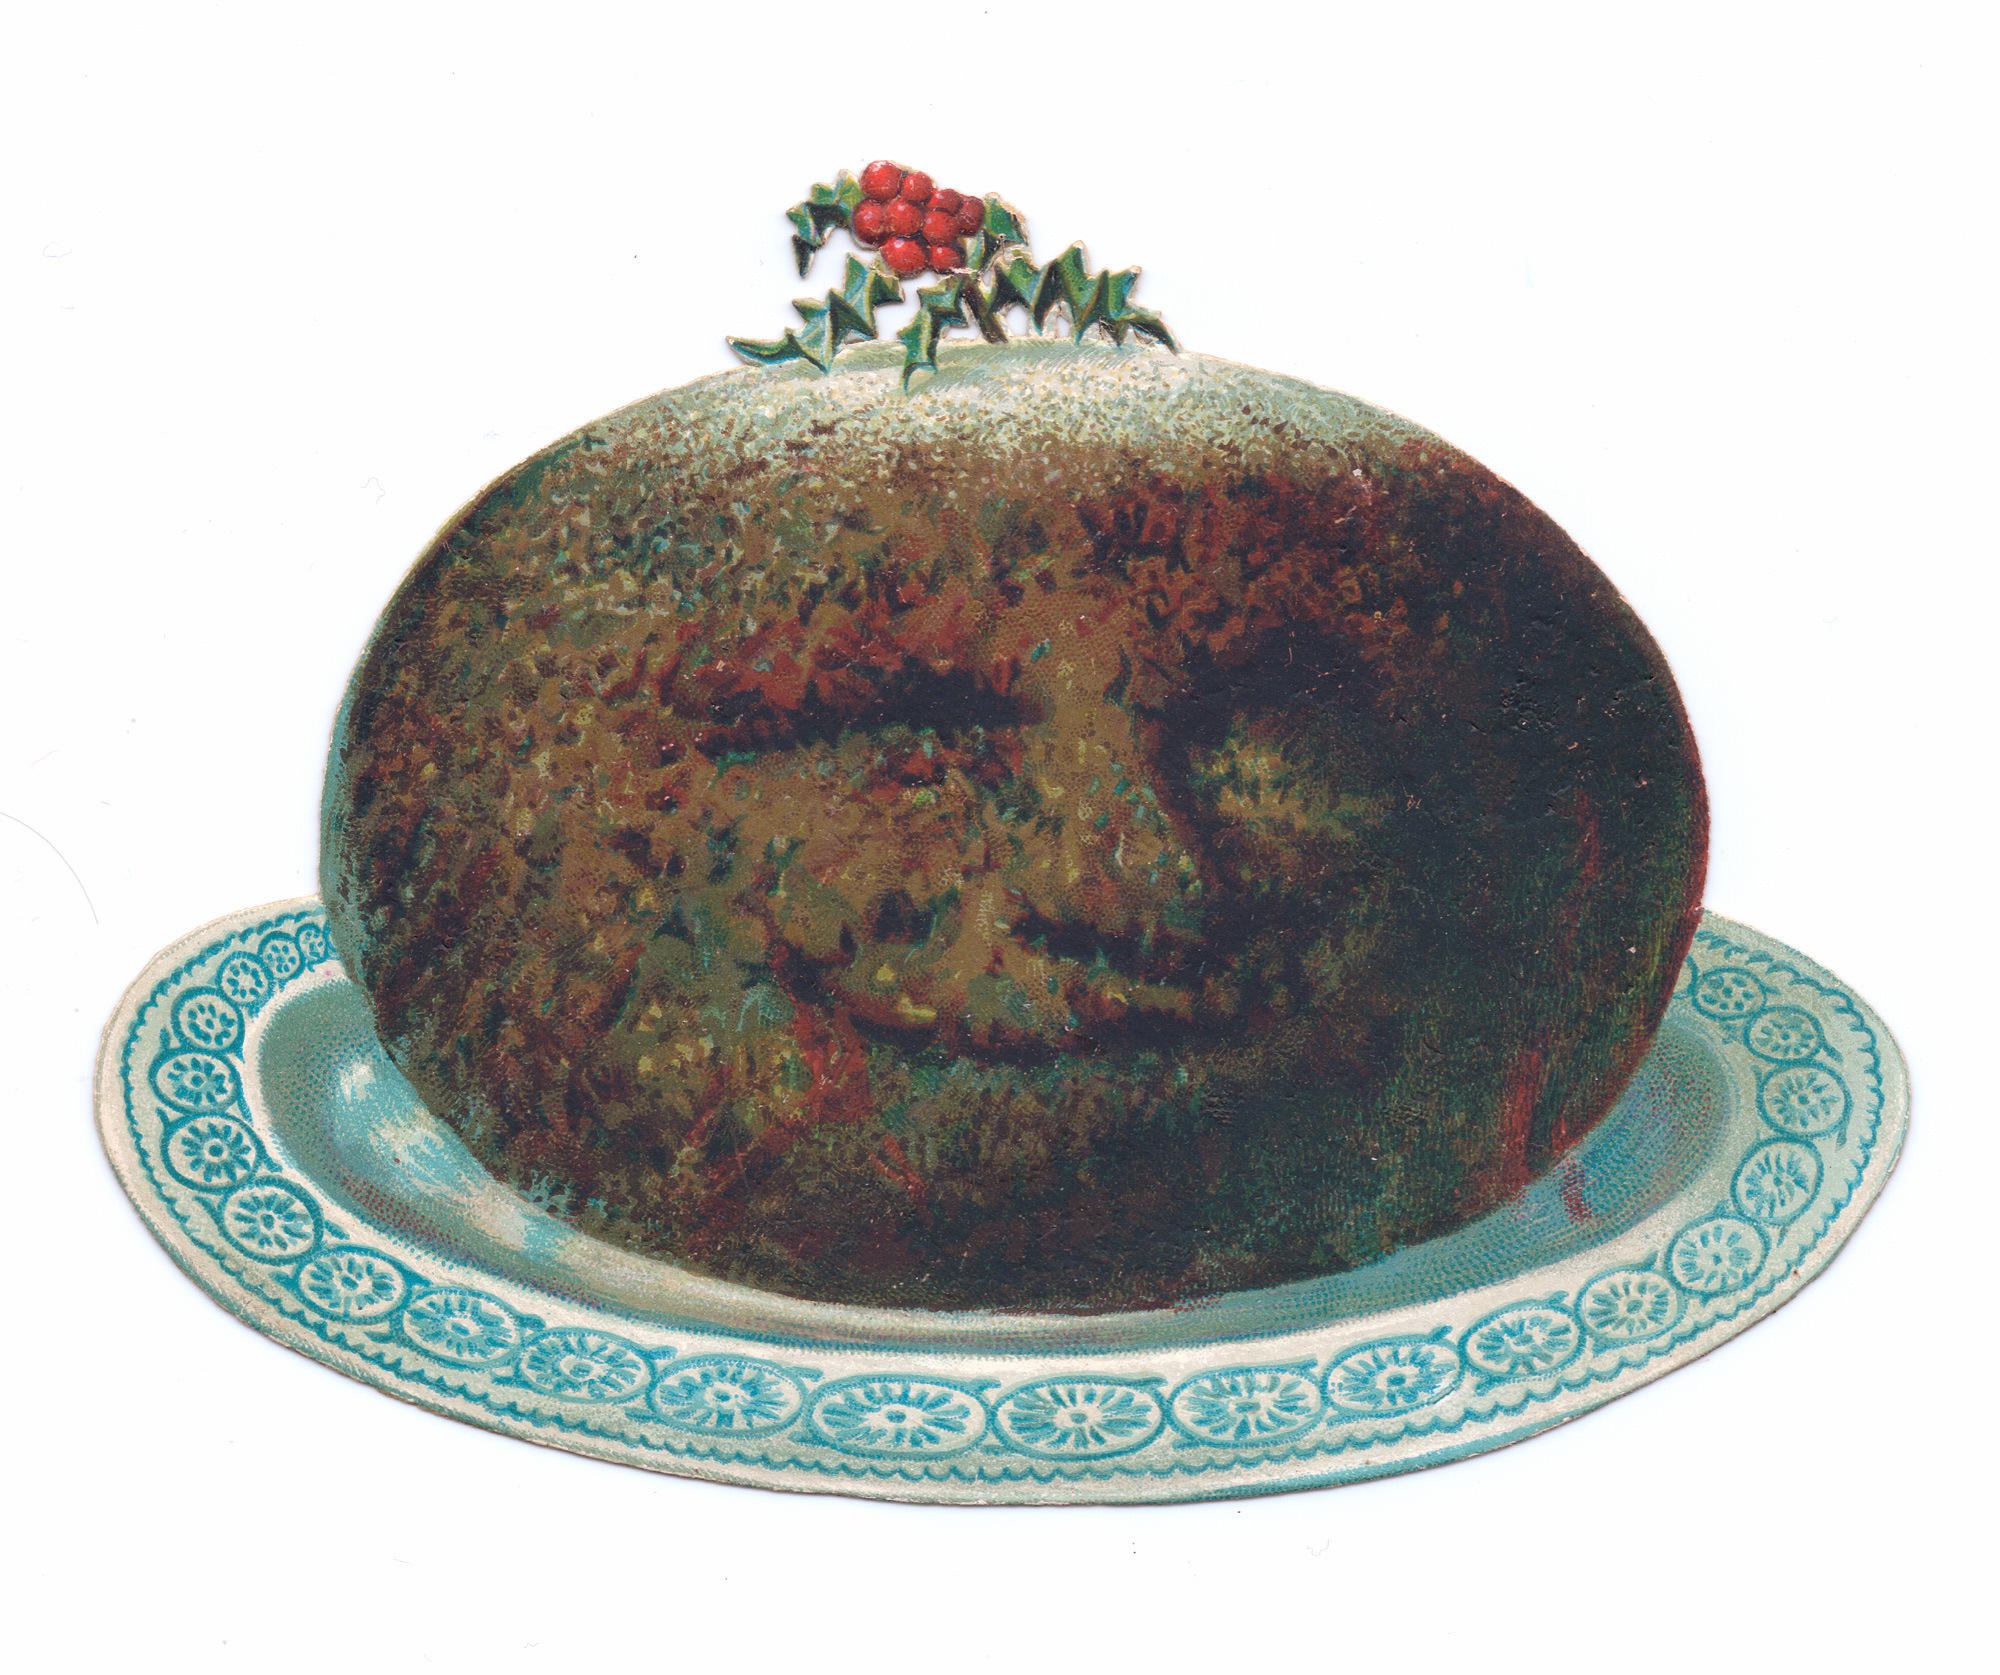 Greeting card in shape of a Christmas pudding